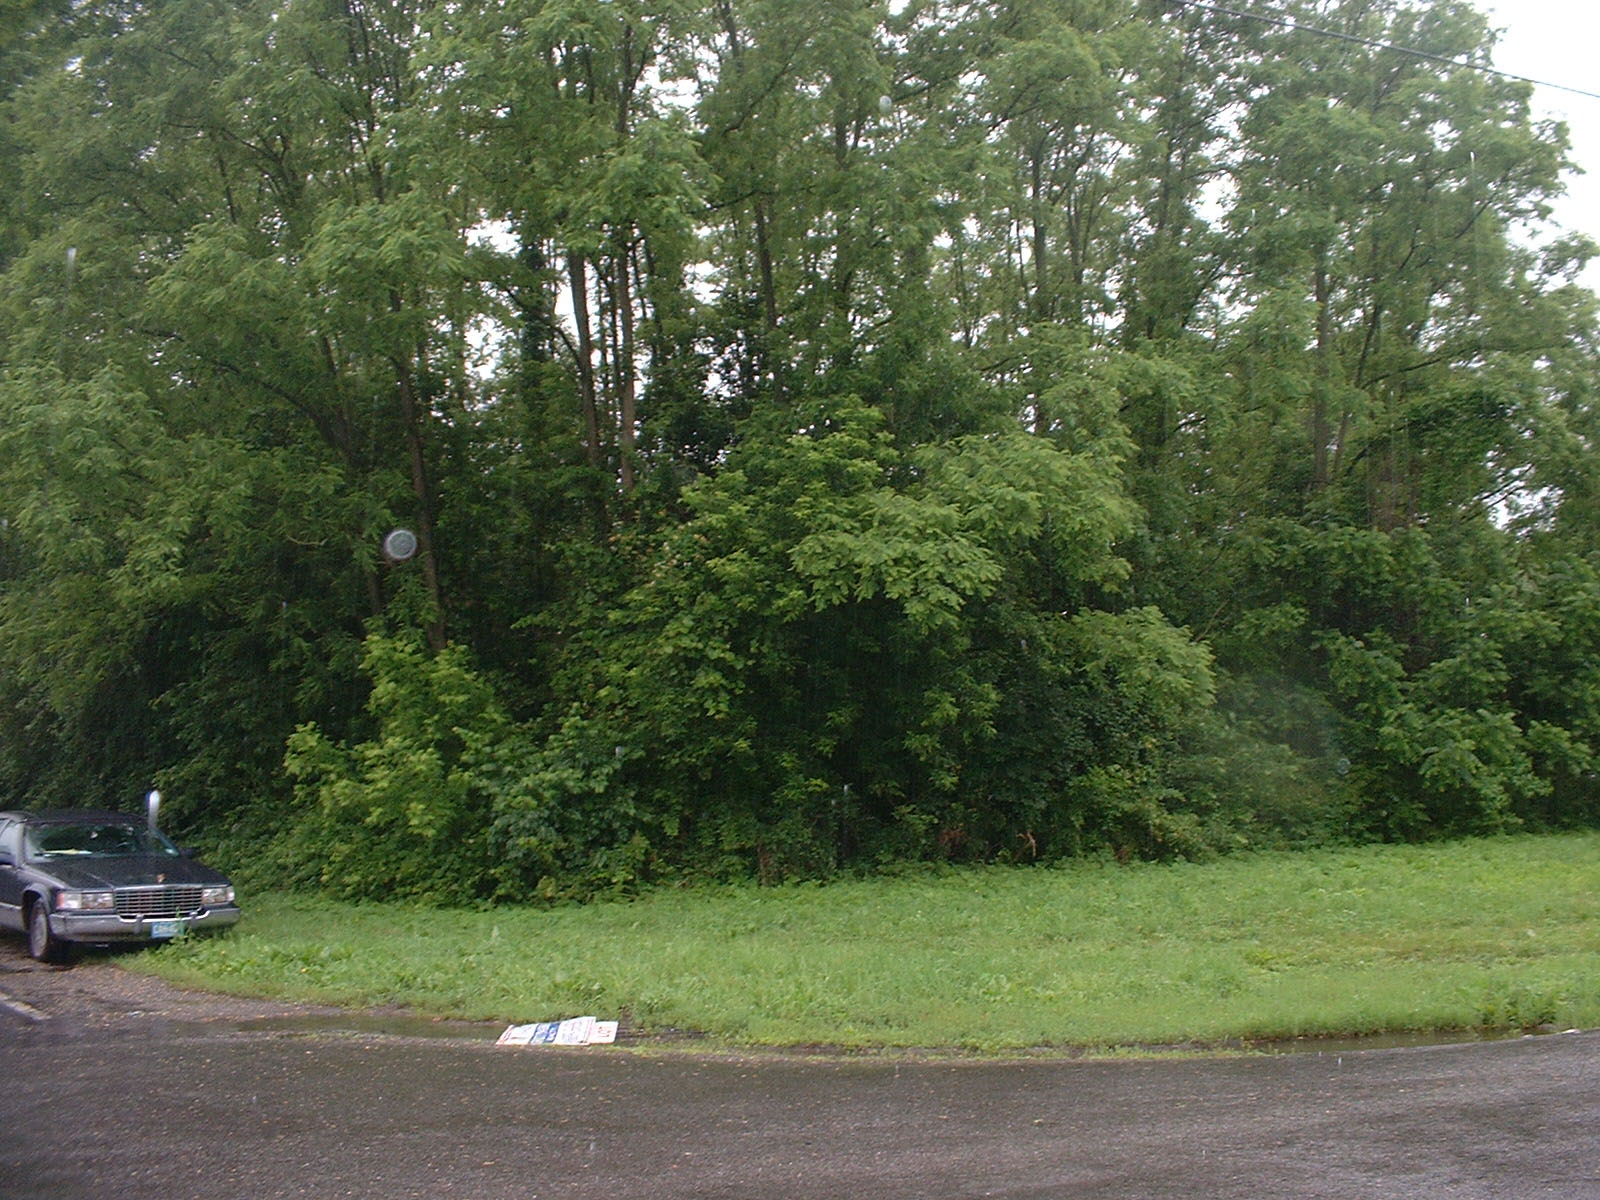 This picture from the center of the street shows the beautifully wooded lot.